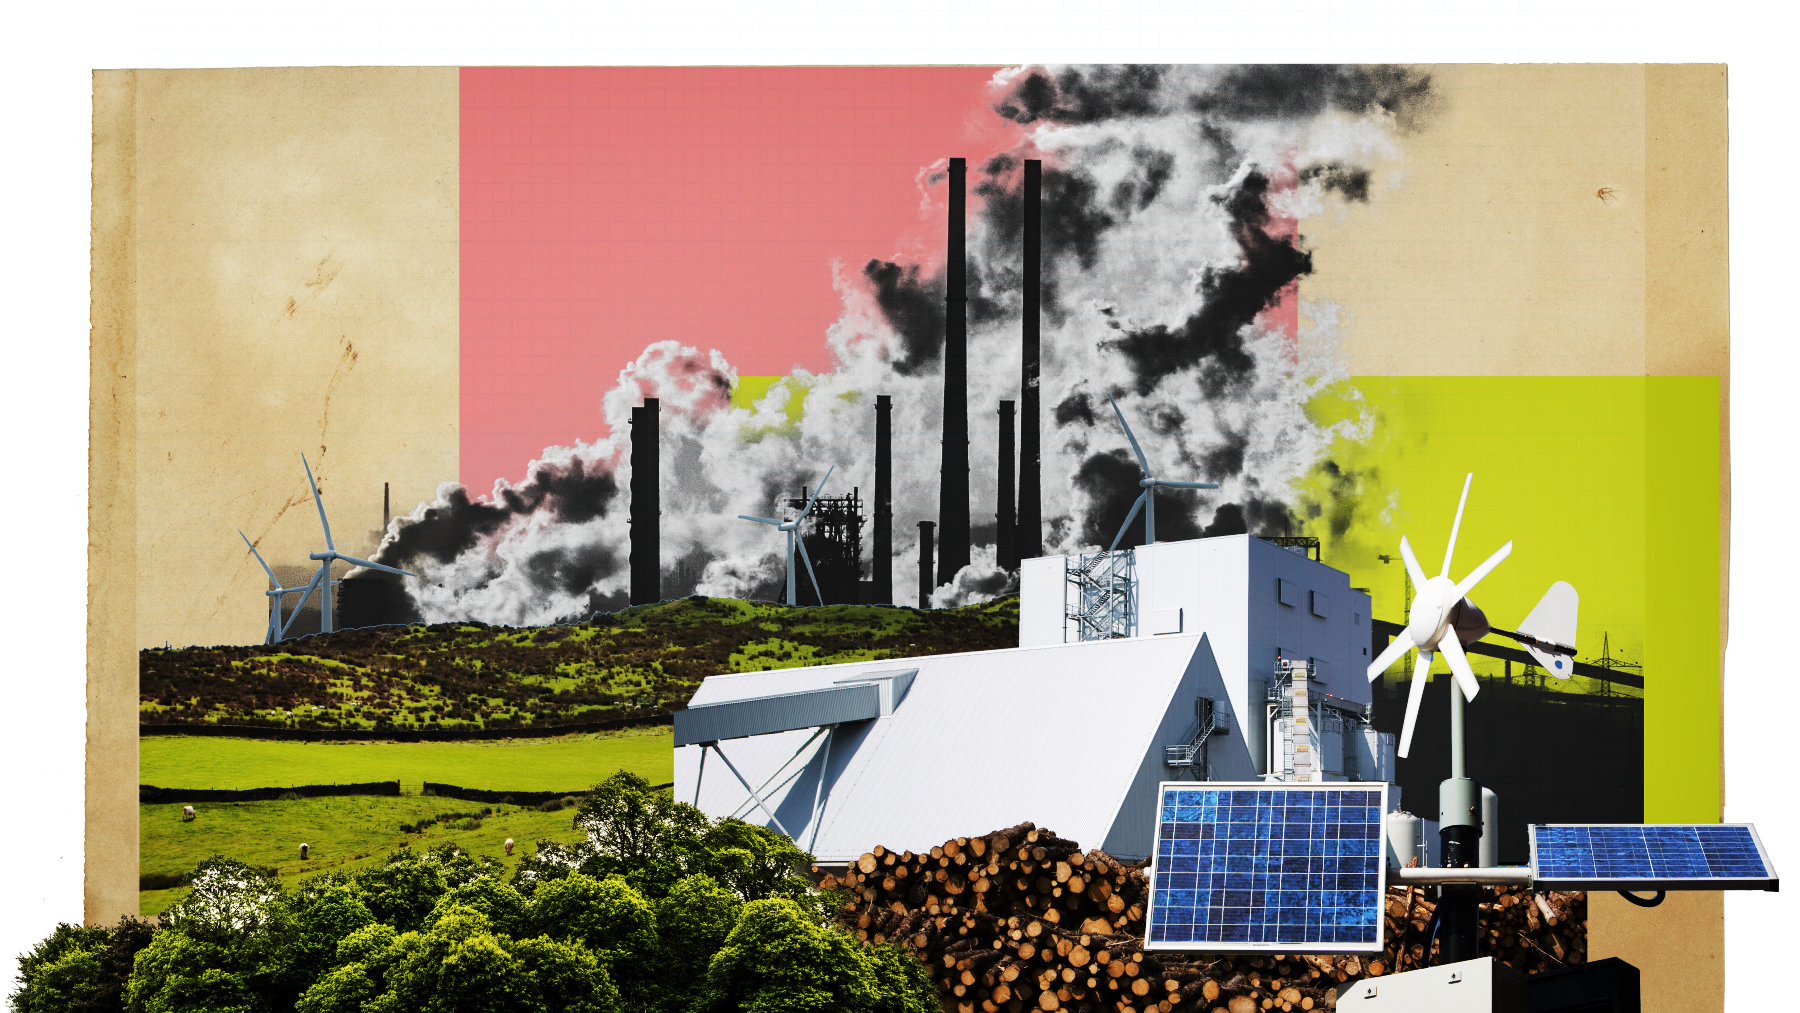 An illustration of polluting smokestacks and renewable energy.